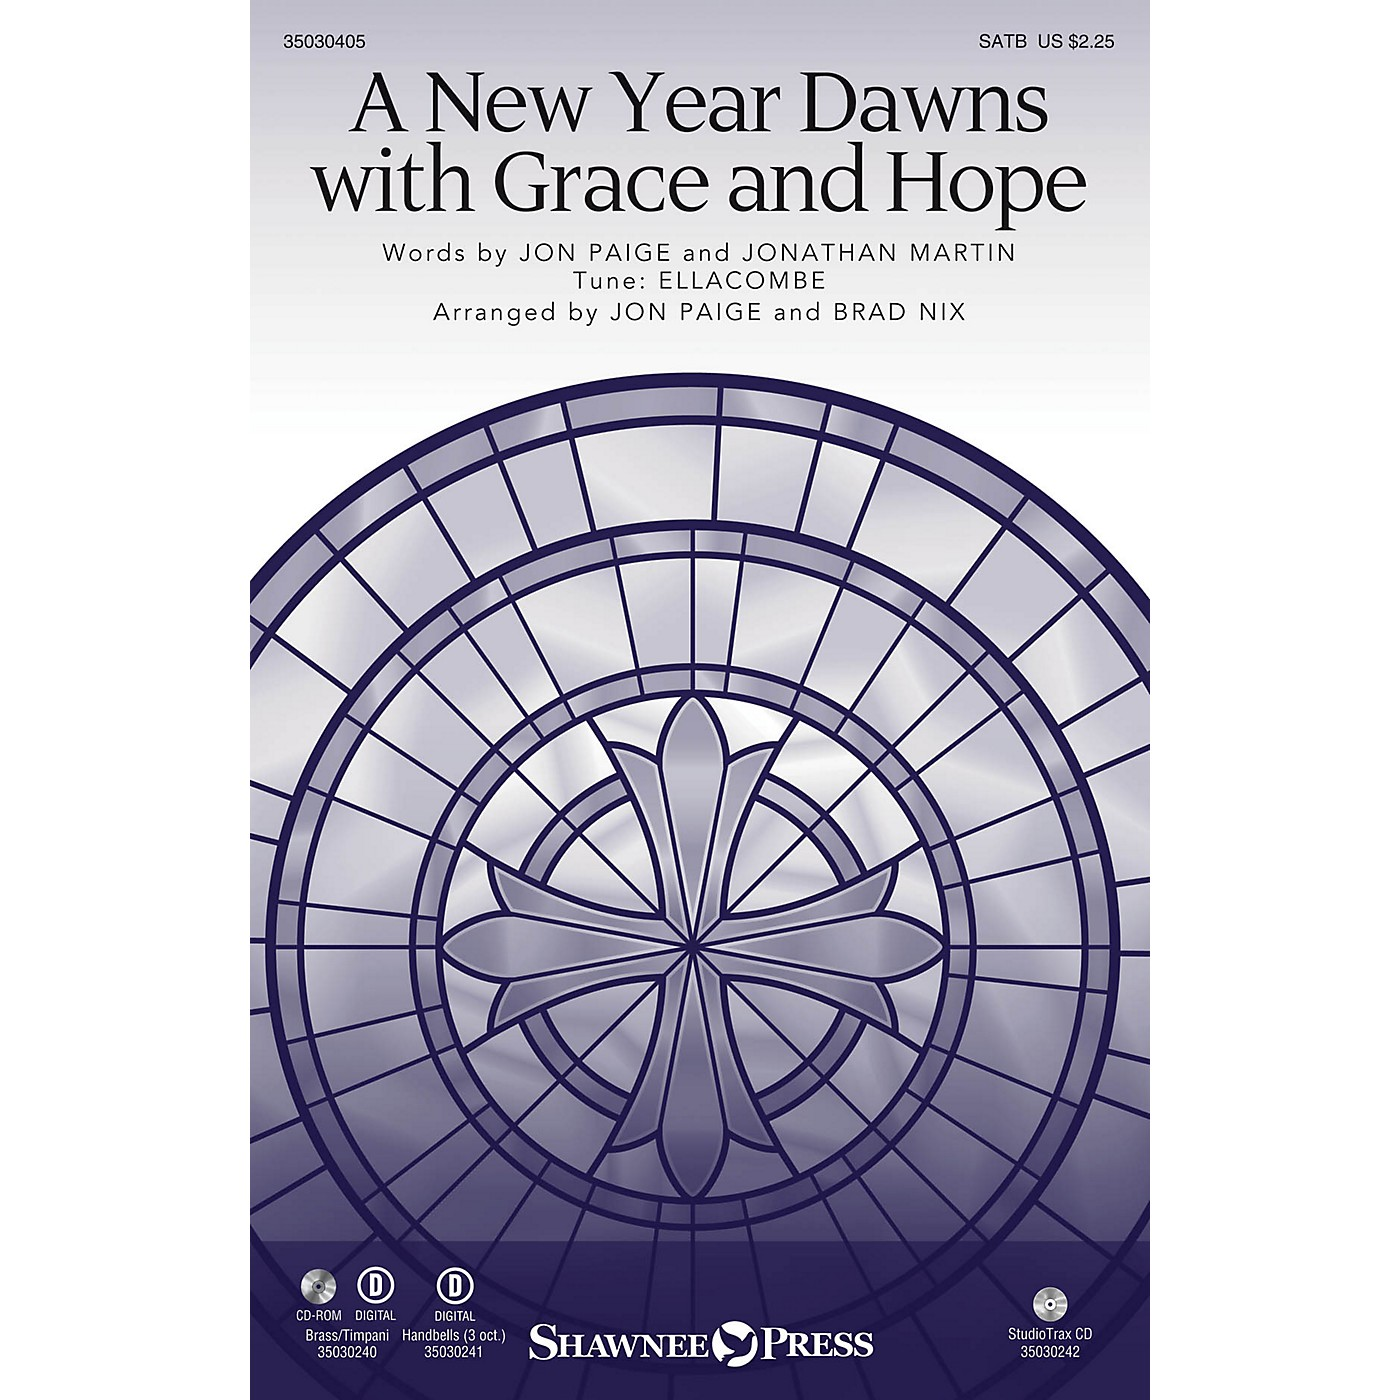 Shawnee Press A New Year Dawns with Grace and Hope SATB/CONGREGATION arranged by Jon Paige thumbnail